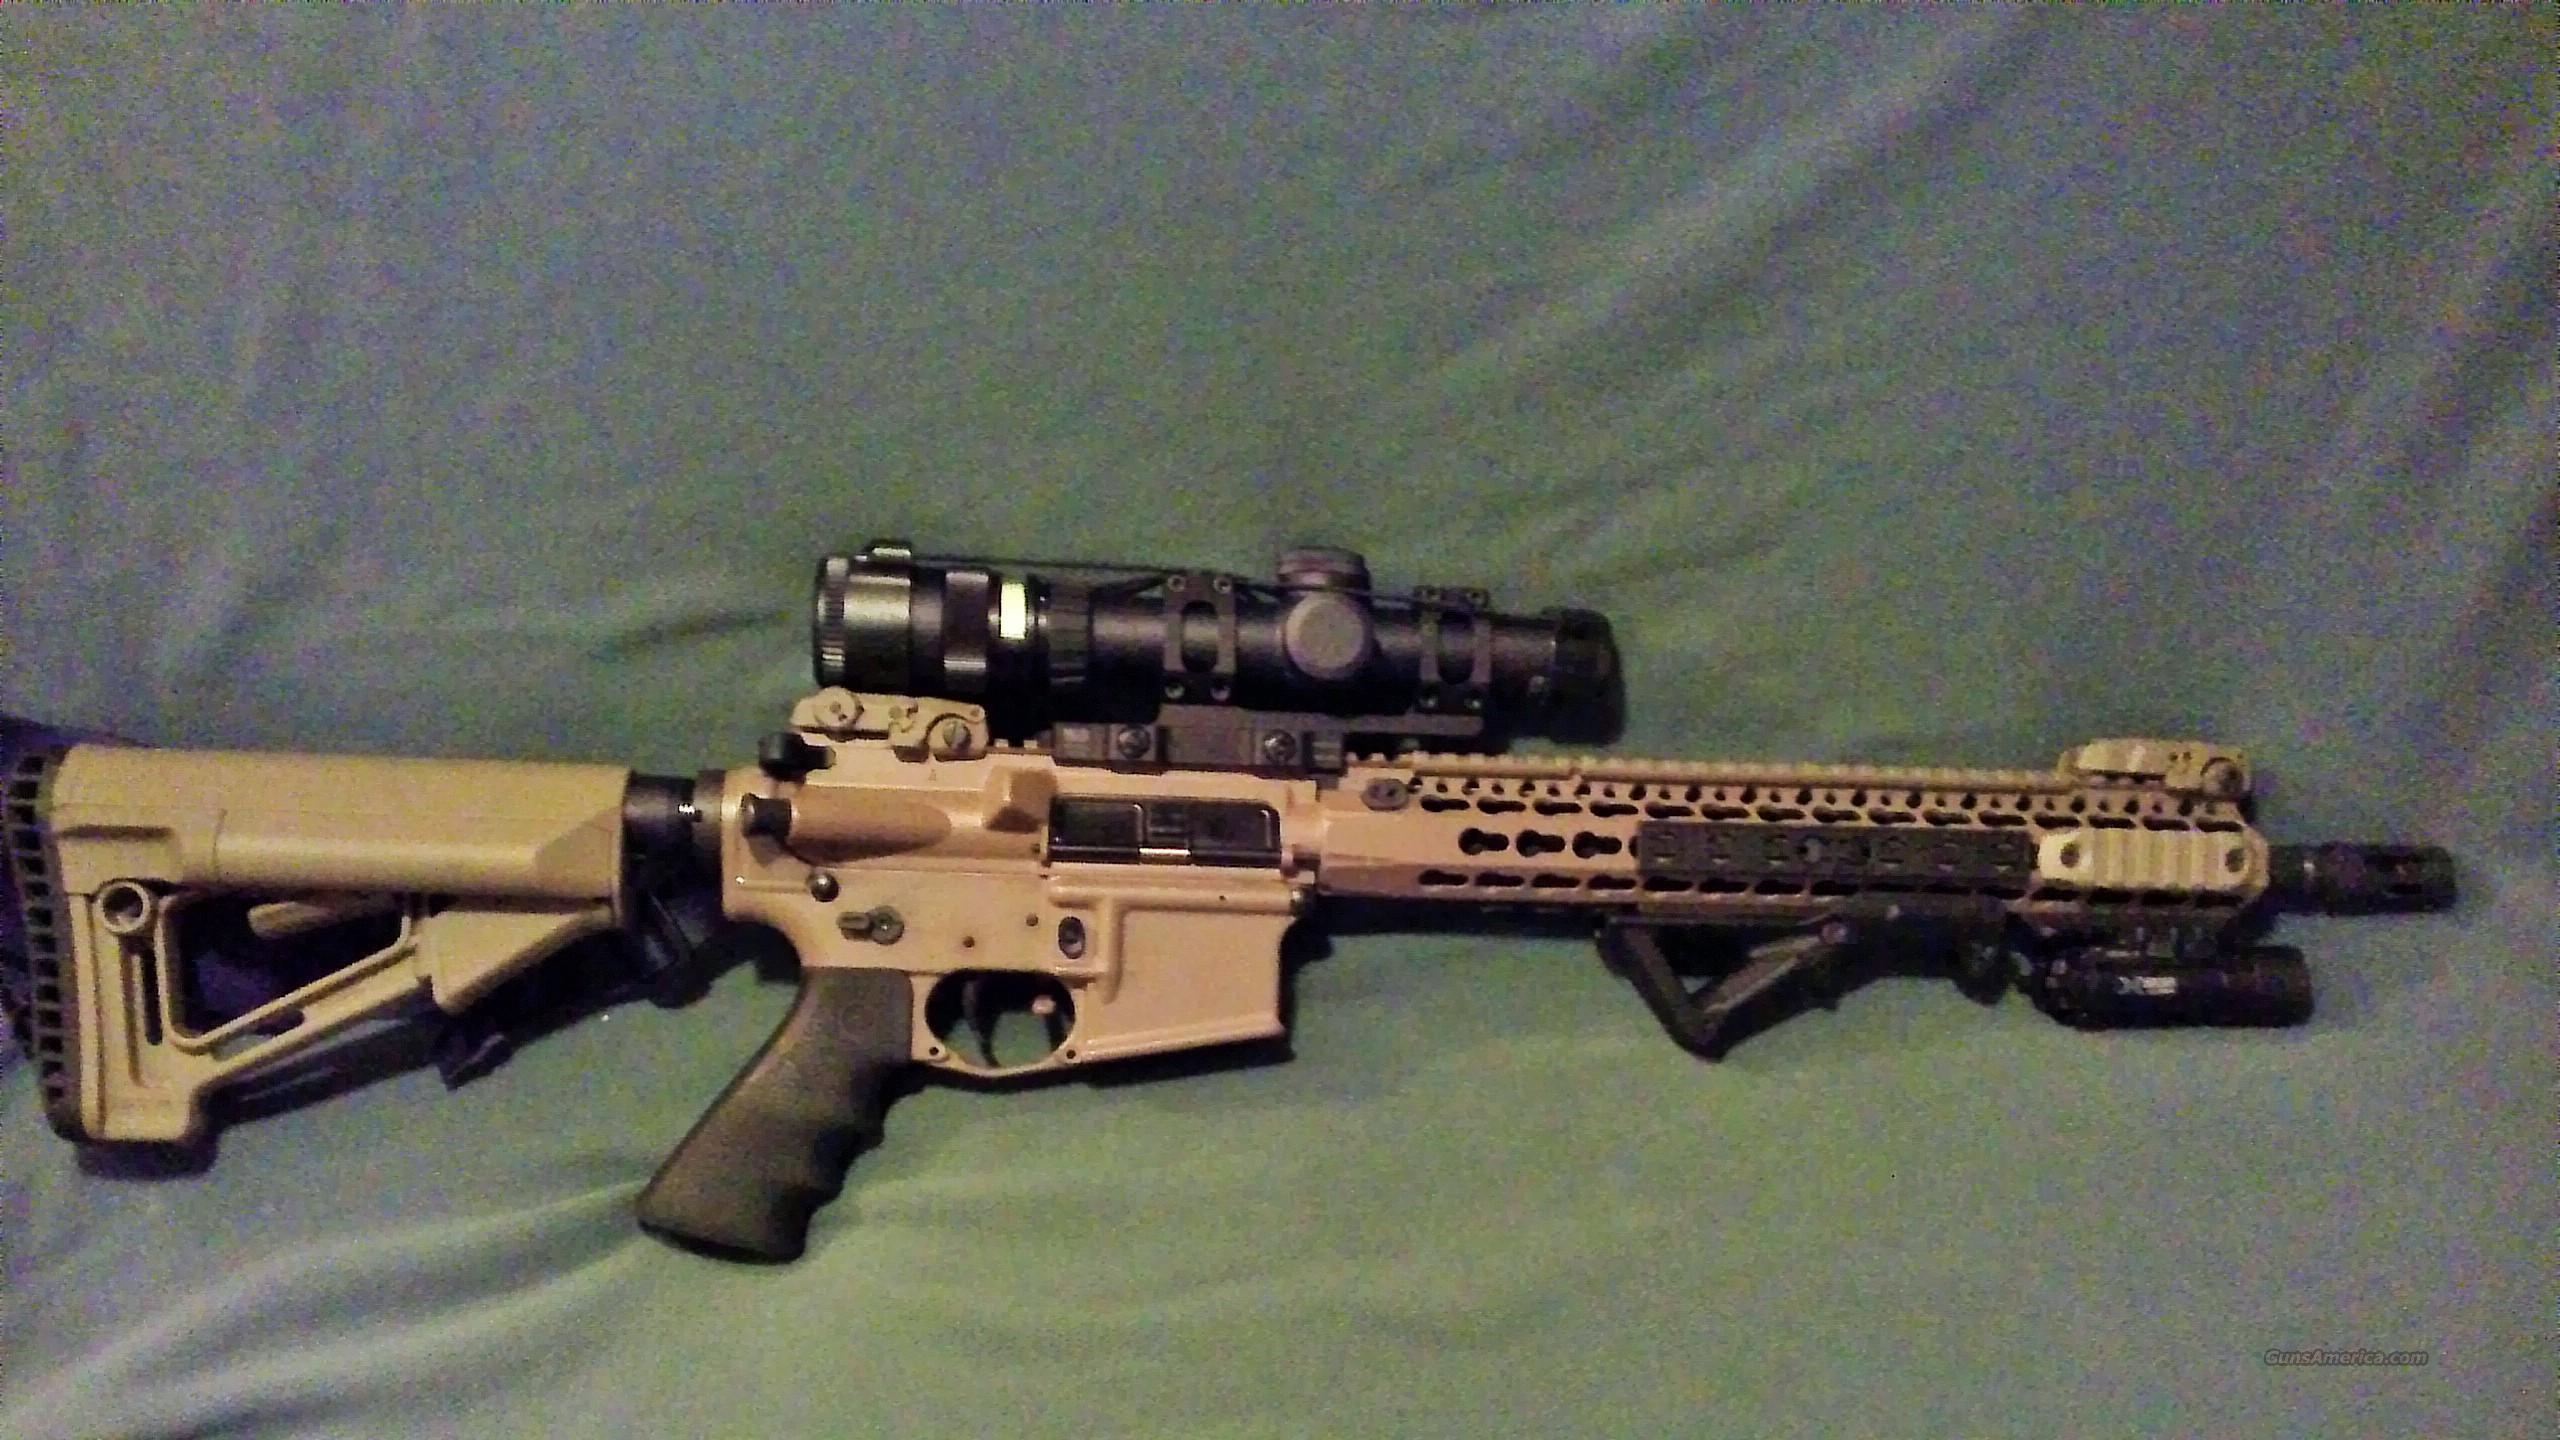 ROCK RIVER CUSTOM TACTICAL RIFLE for sale (930740841)